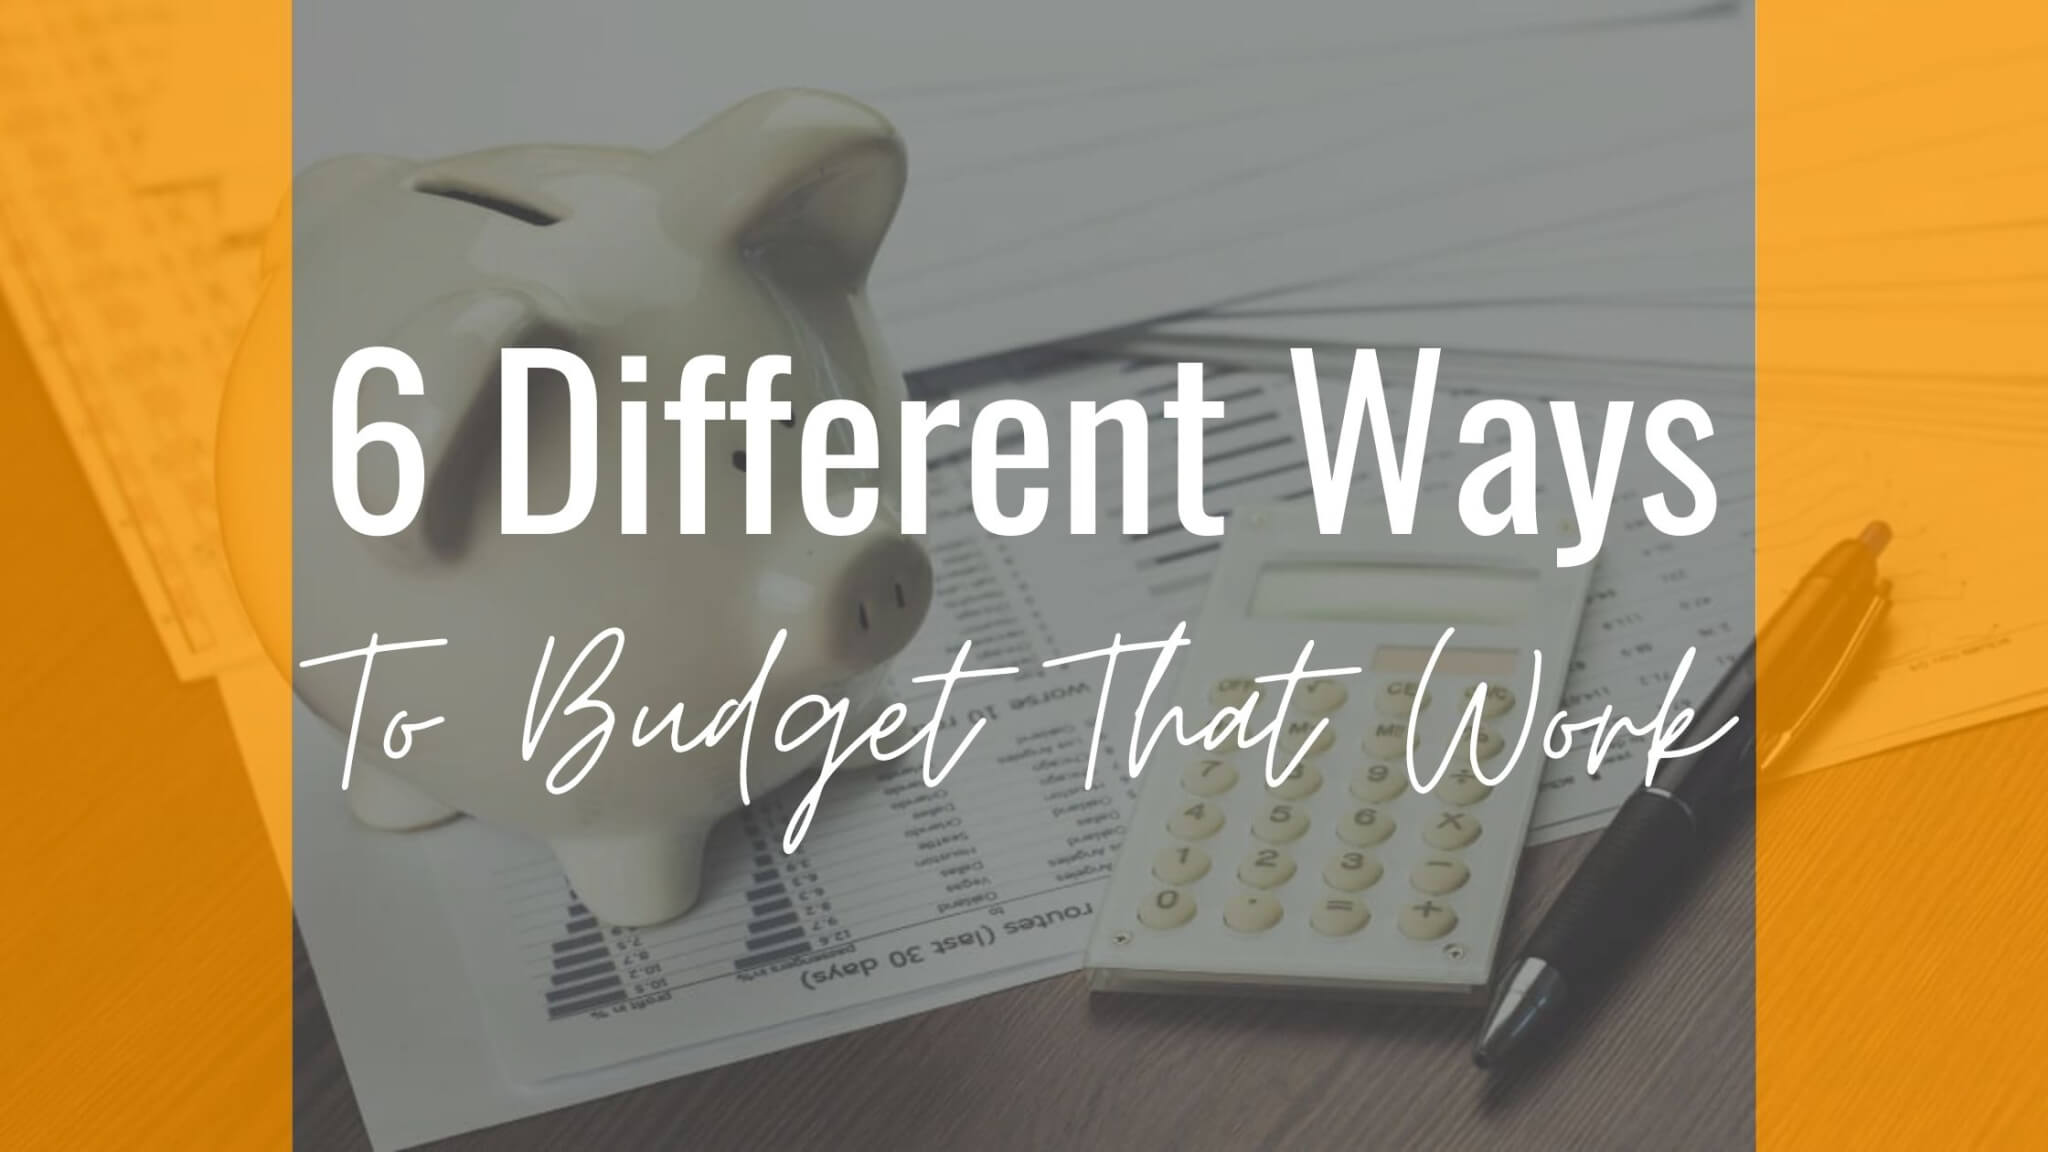 6 Different Ways To Budget That Work